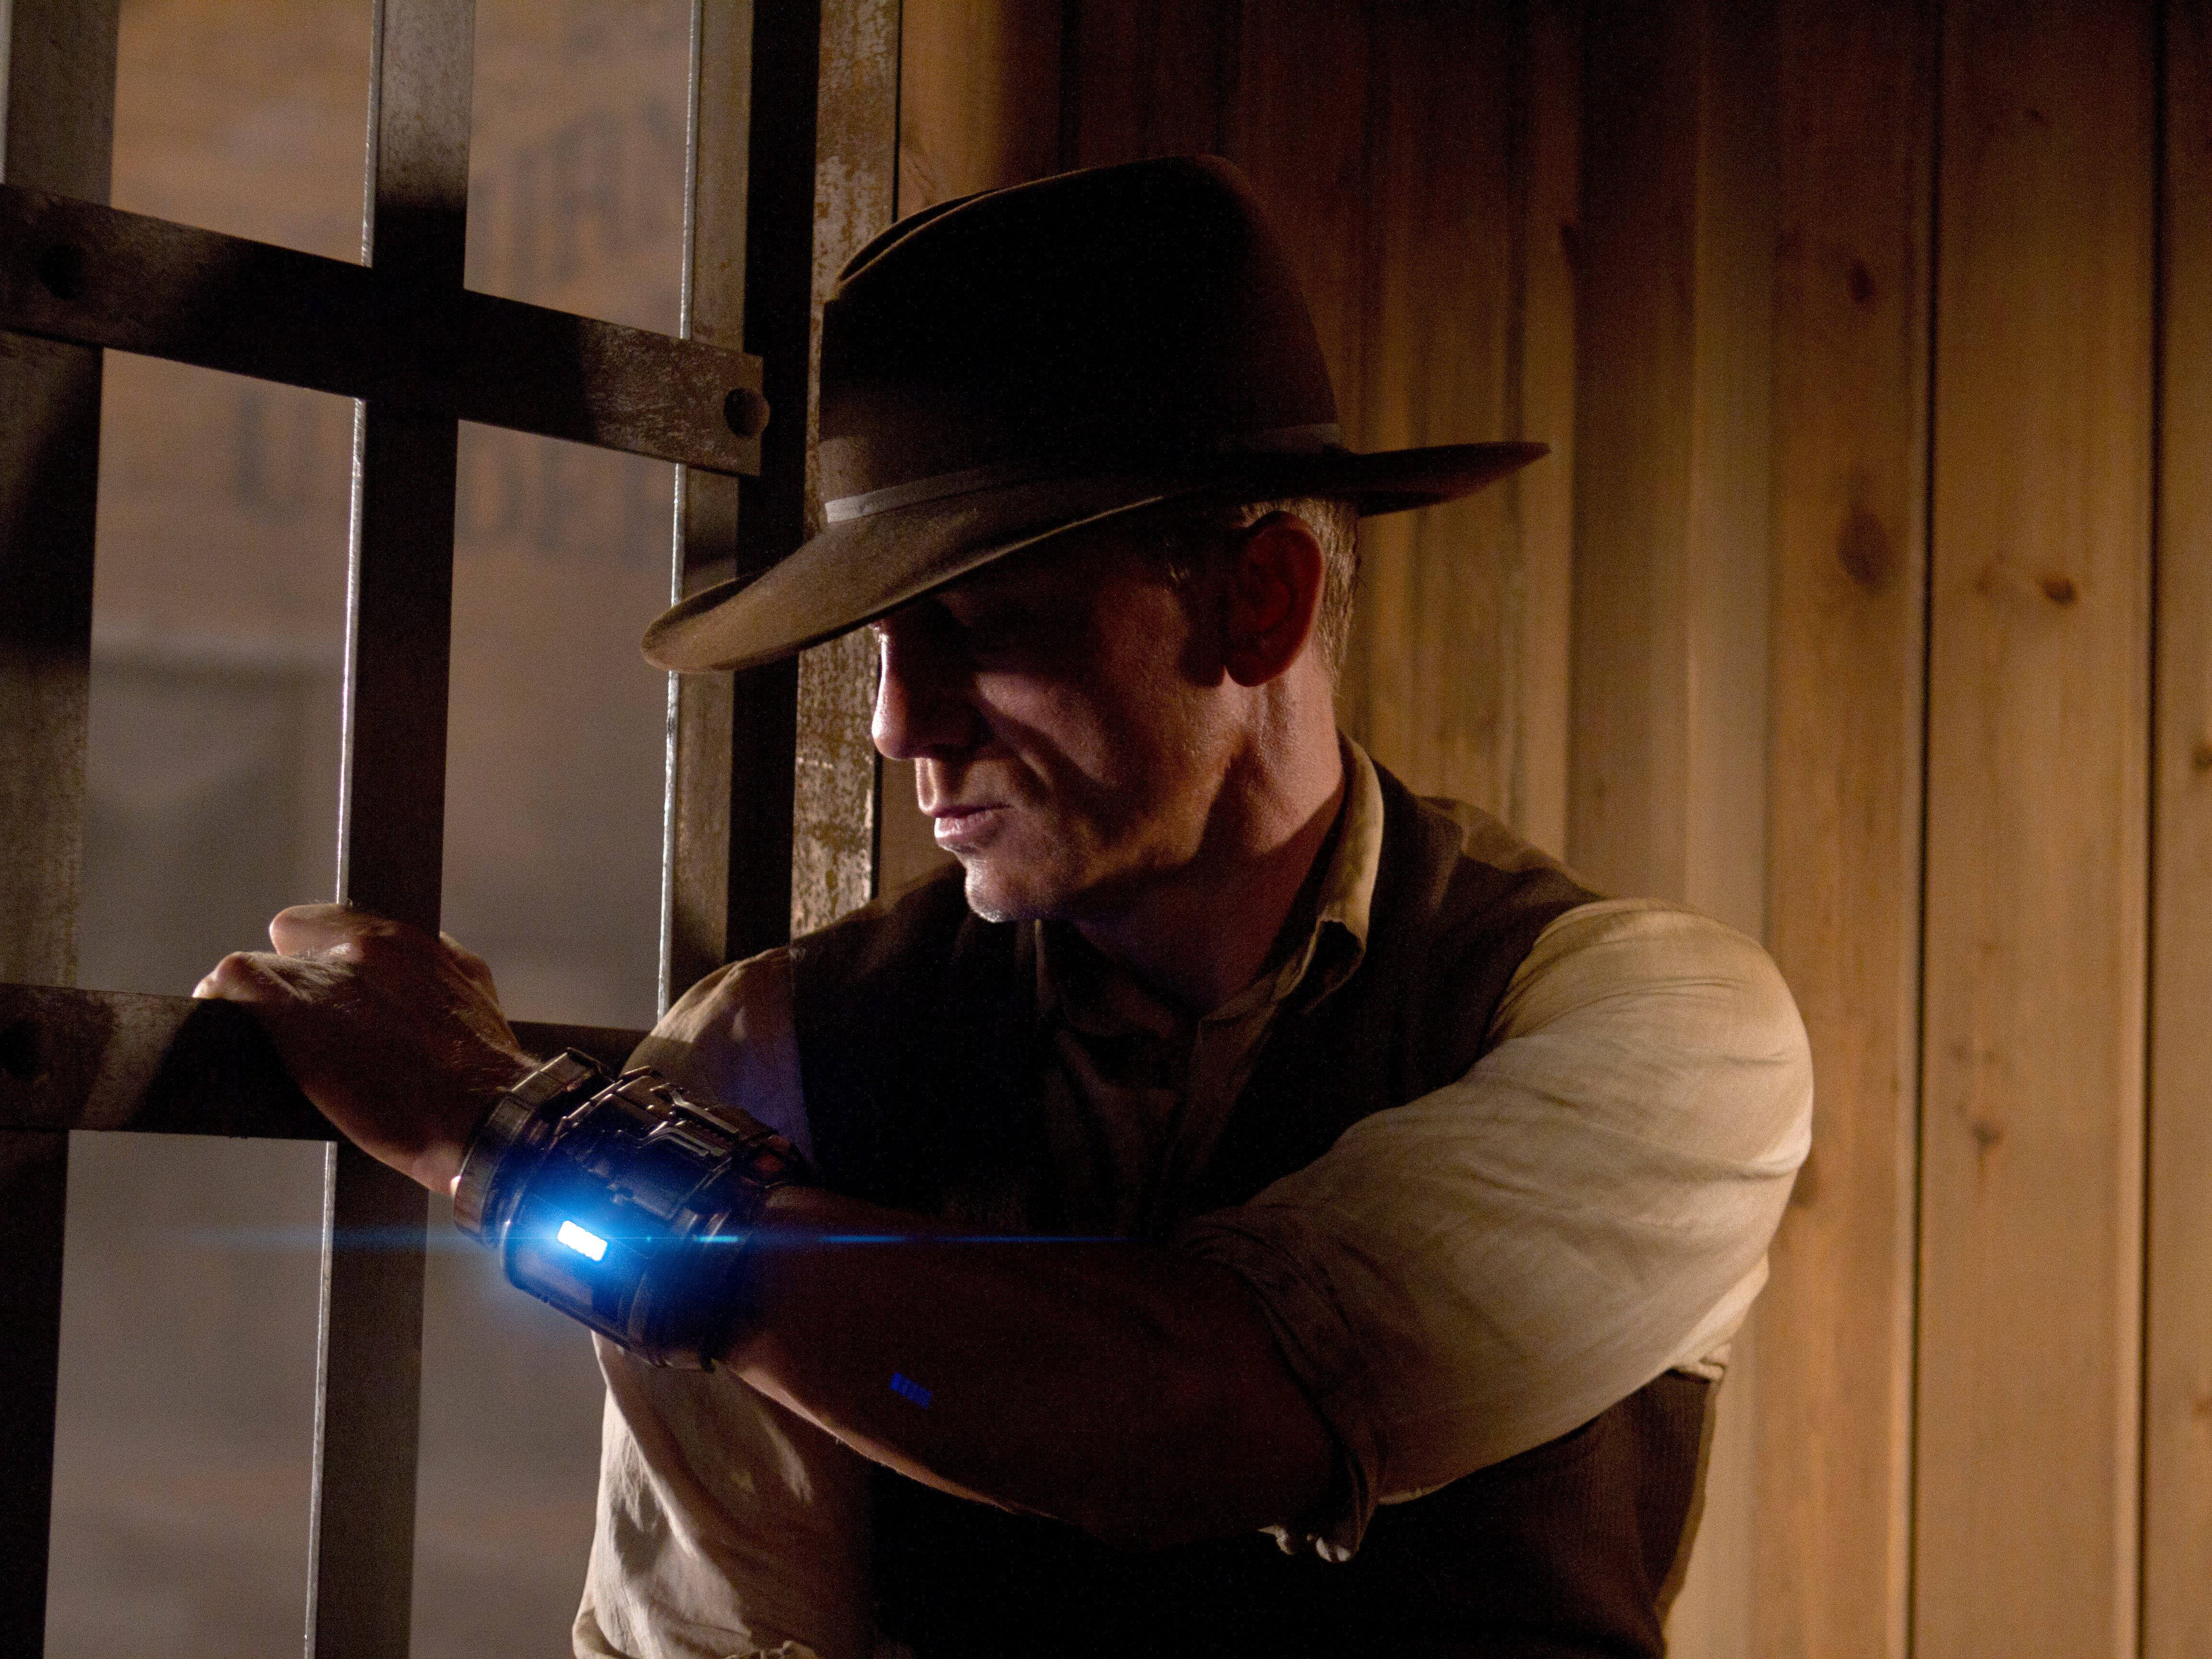 """'Cowboys & Aliens' (2011): Set in the alien-ridden dusty town of Absolution, in the Arizona territory, a hodgepodge of genres converge in thissci-fi Western starring Harrison Ford and Daniel Craig. Though many would say Arizona certainly has its experiences with extraterrestrial visitors, we think New Mexico has us beat. Roswell, anyone? """"Cowboys & Aliens"""" was filmed in and around Santa Fe, including Bonanza Creek Ranch."""